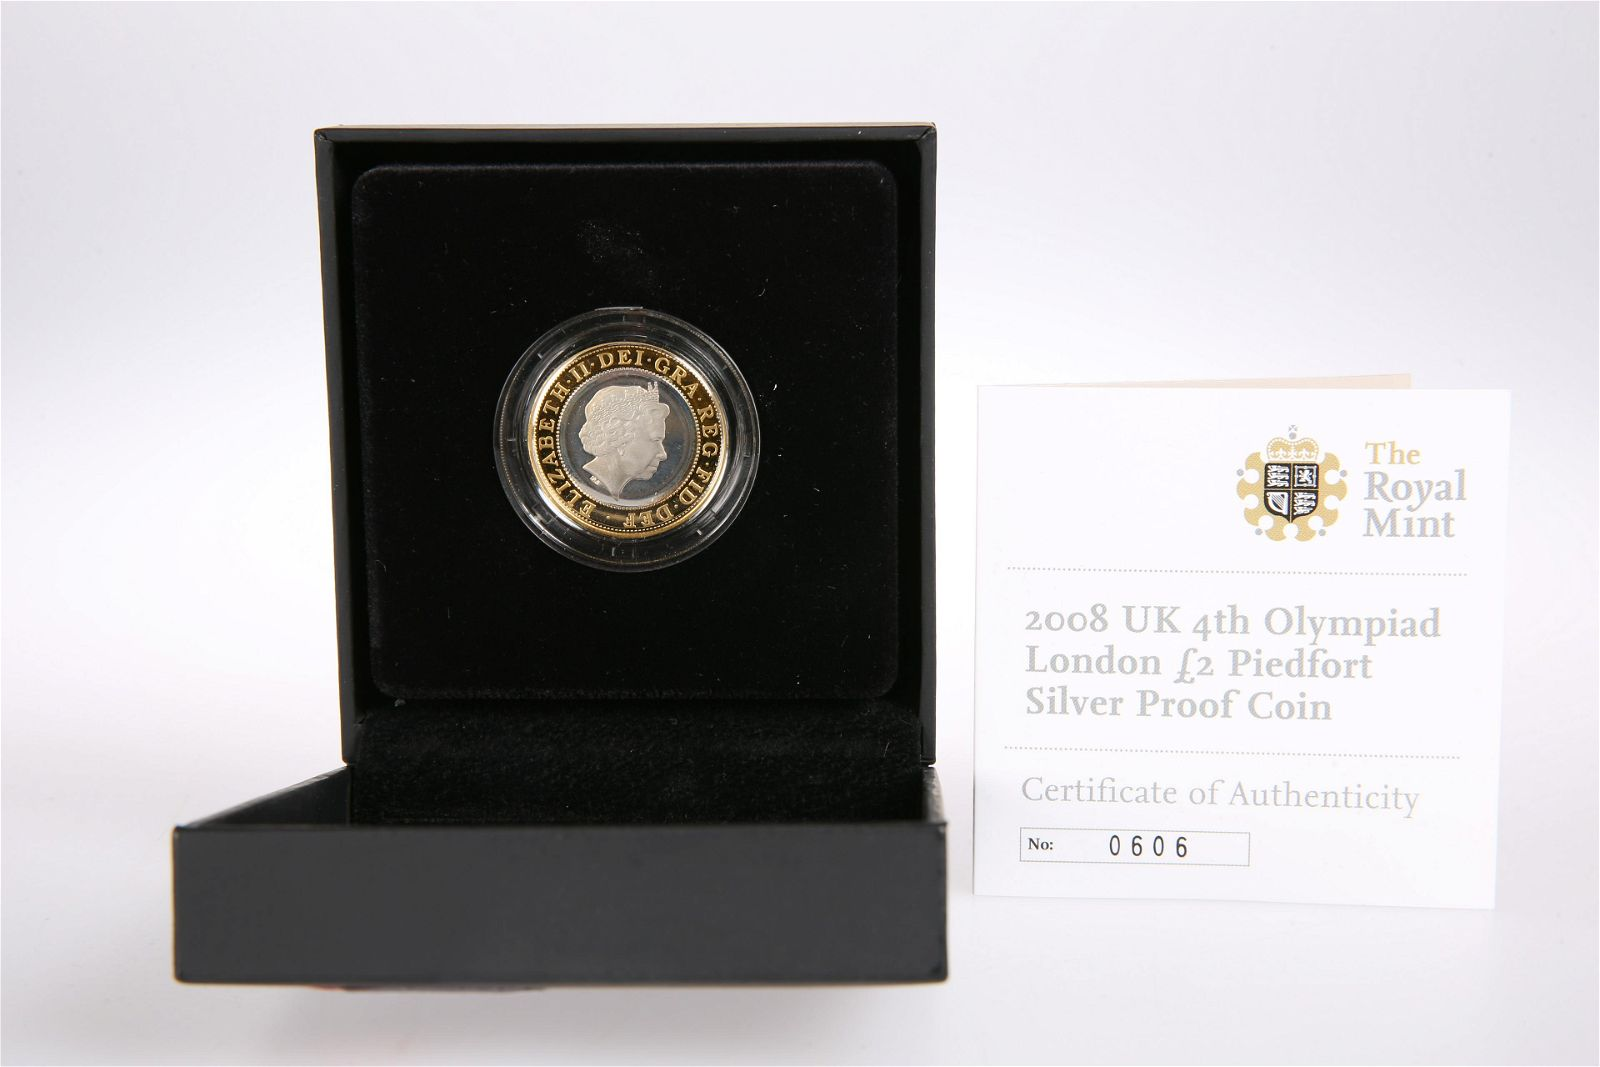 2008 UK 4TH OLYMPIAD LONDON TWO POUND PIEDFORT SILVER